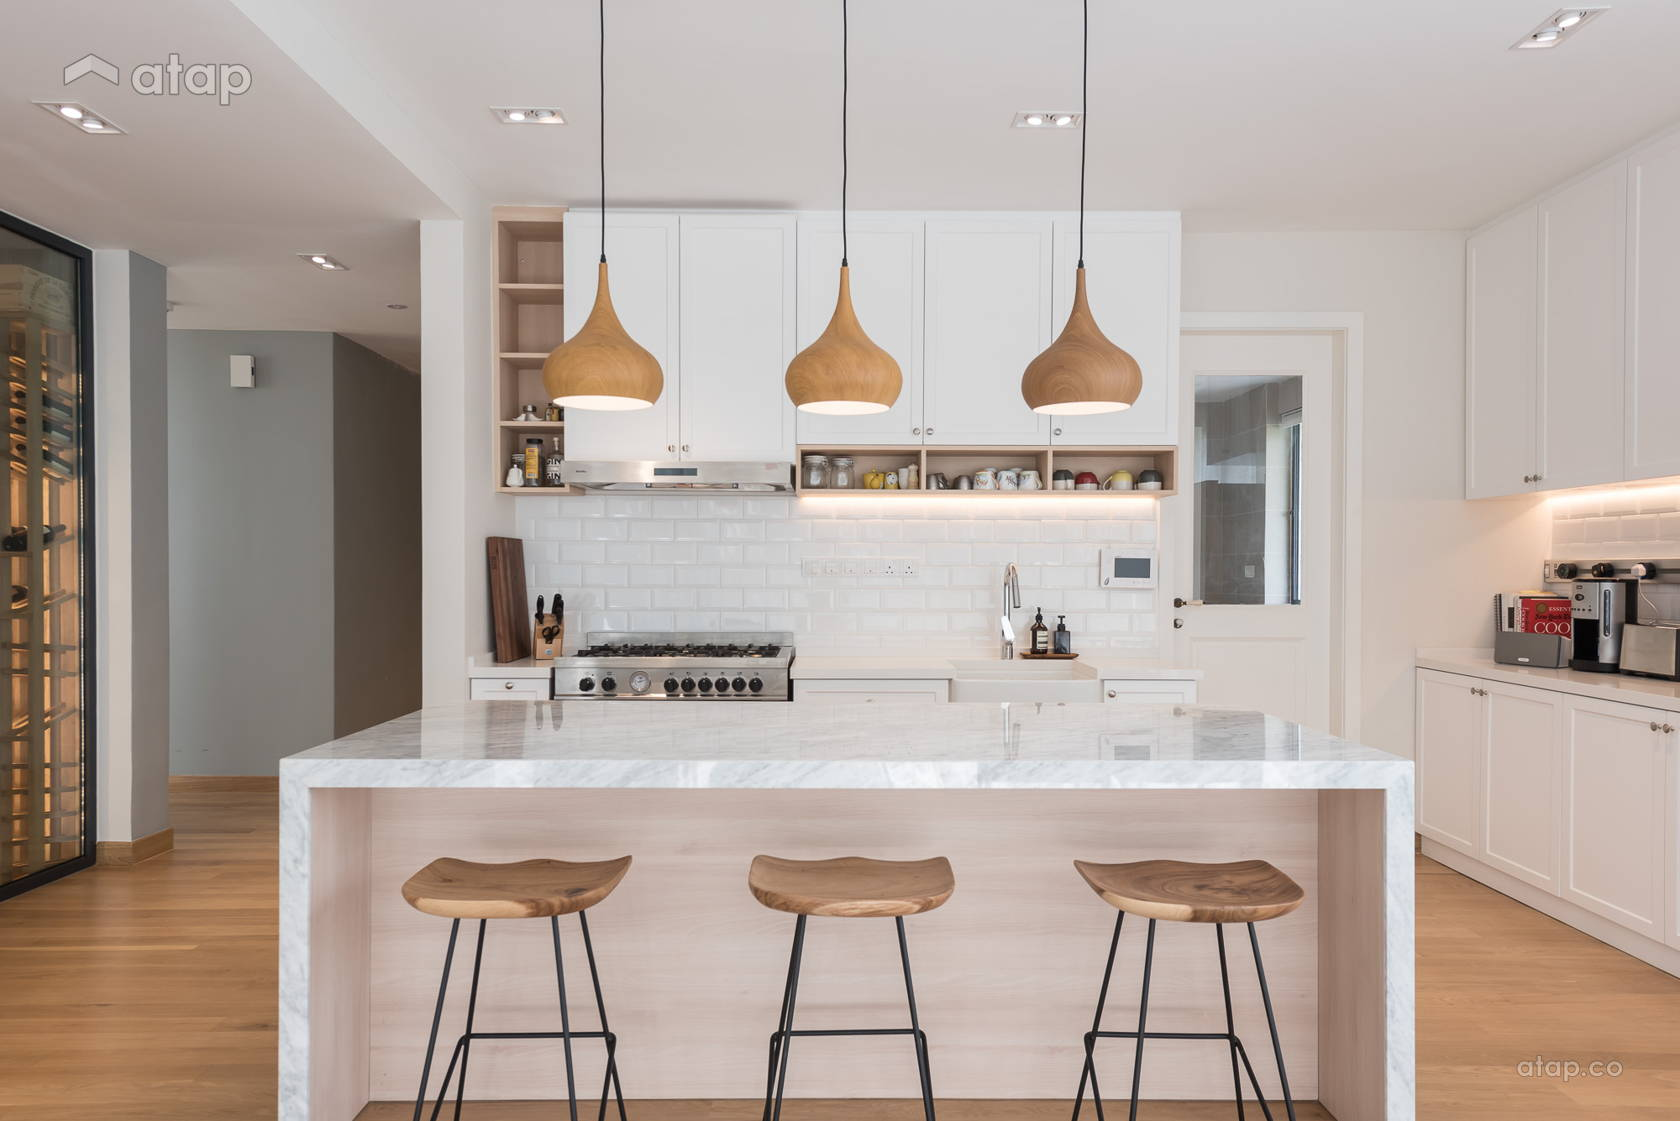 Minimalistic Modern Dining Room Kitchen @ Scandinavian Bungalow | When Simplicity Matters